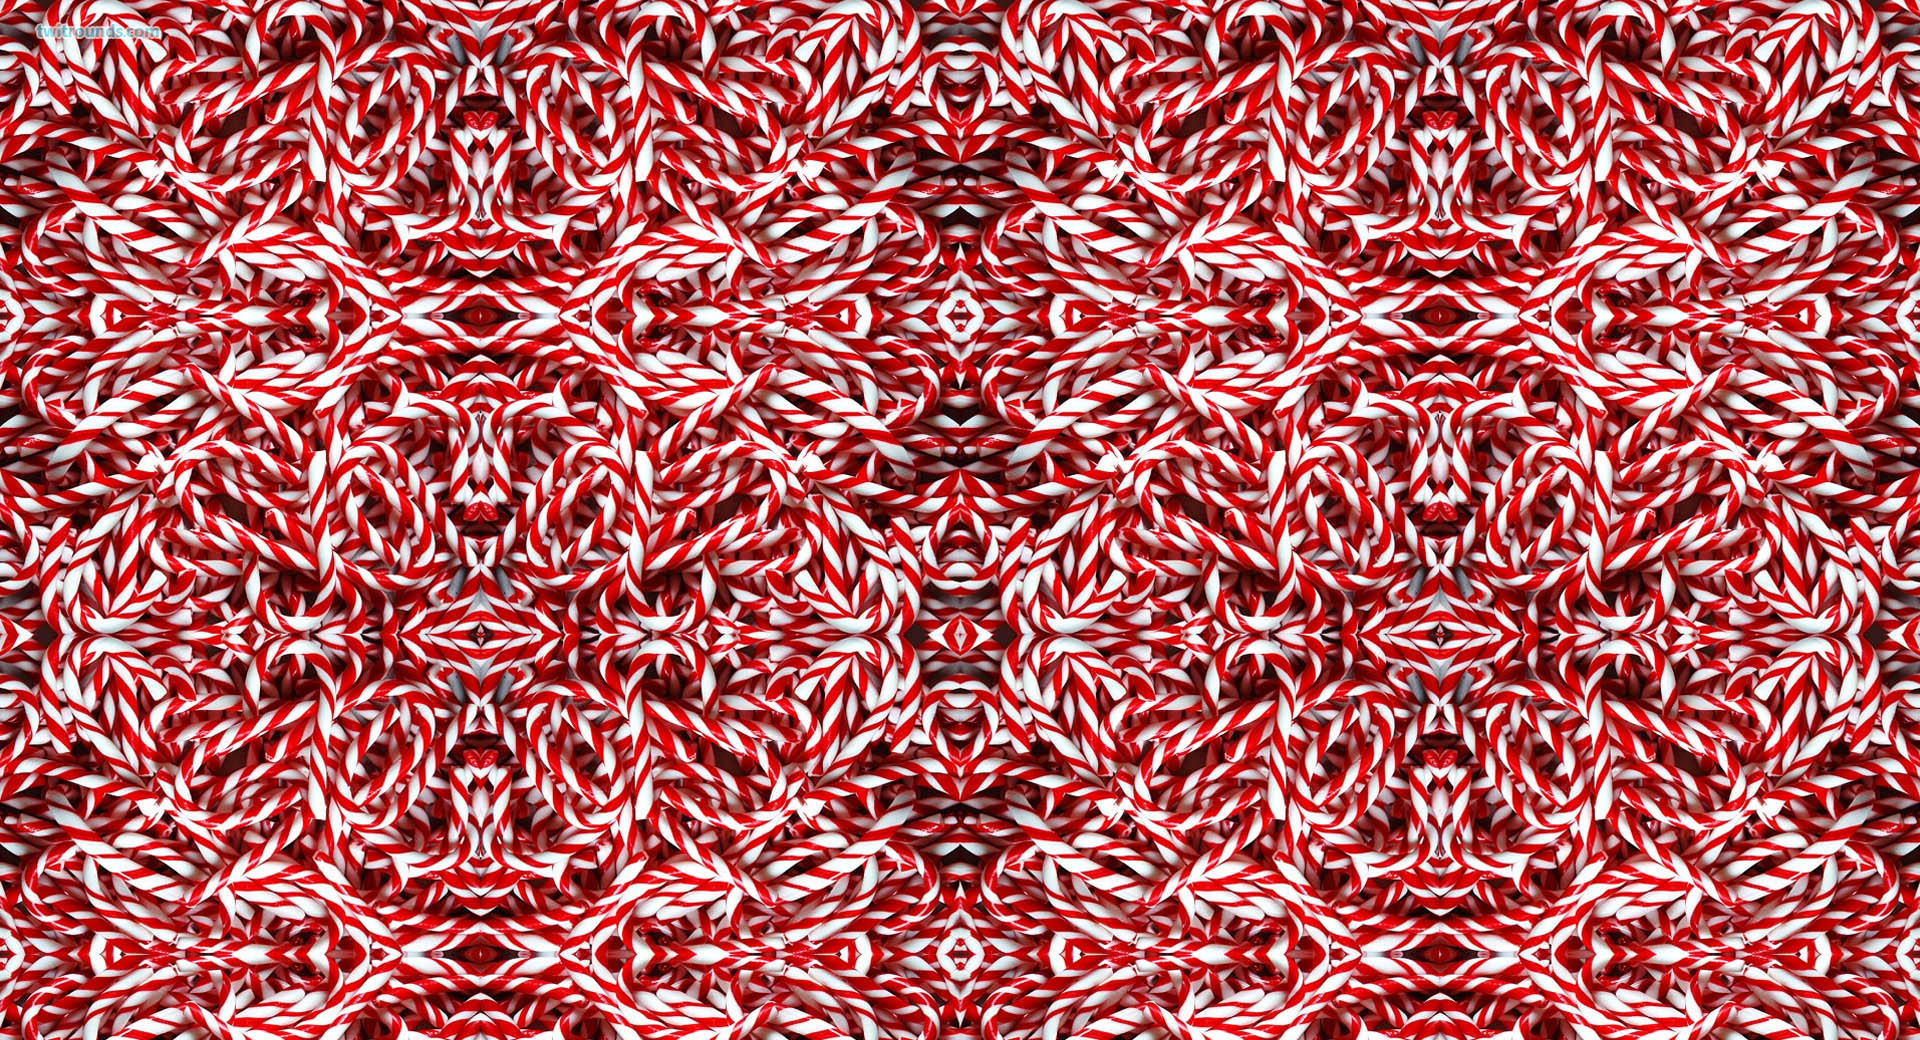 trippy candy cane wallpaper 66280